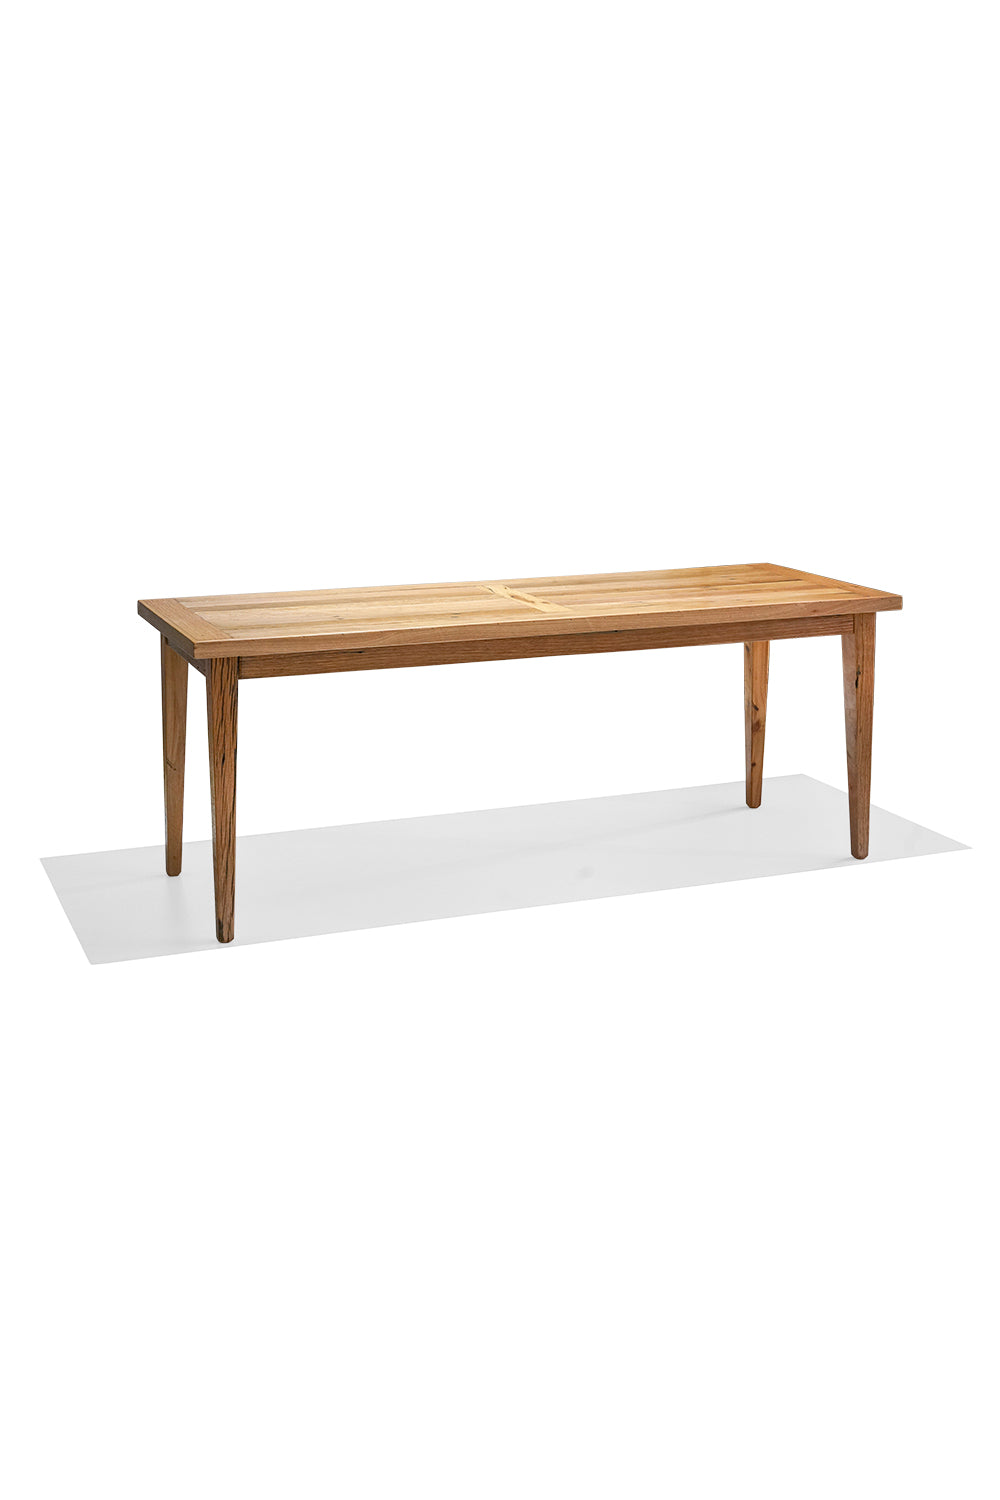 HARDWOOD dining table - blonde finish